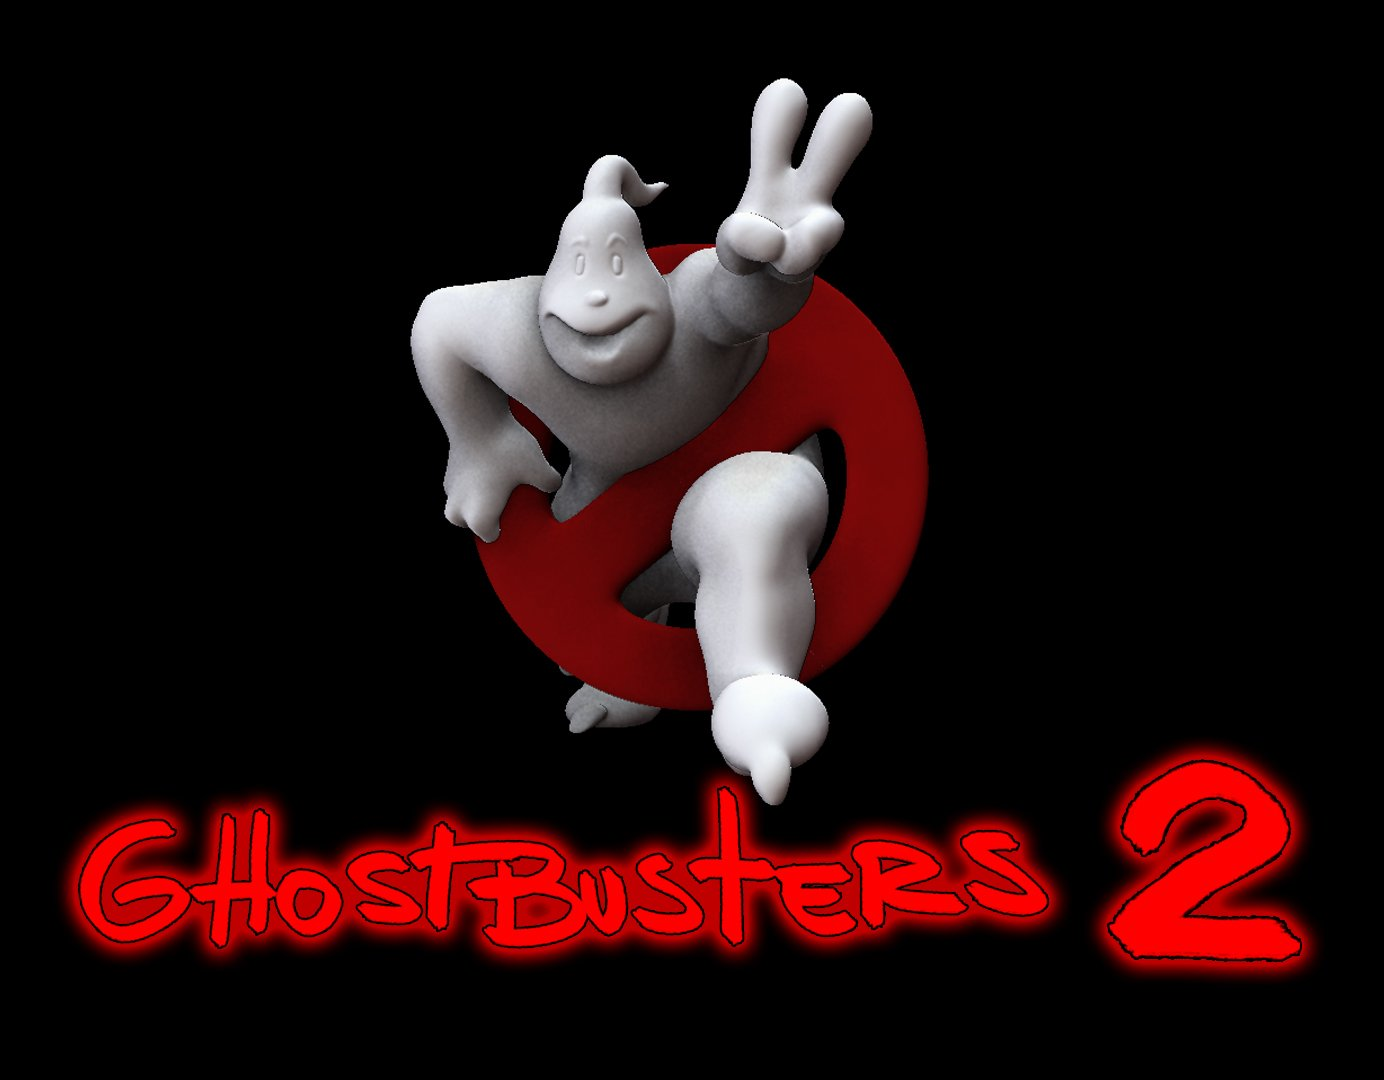 Ghostbuster 2 Logo 3d Model In Man 3dexport